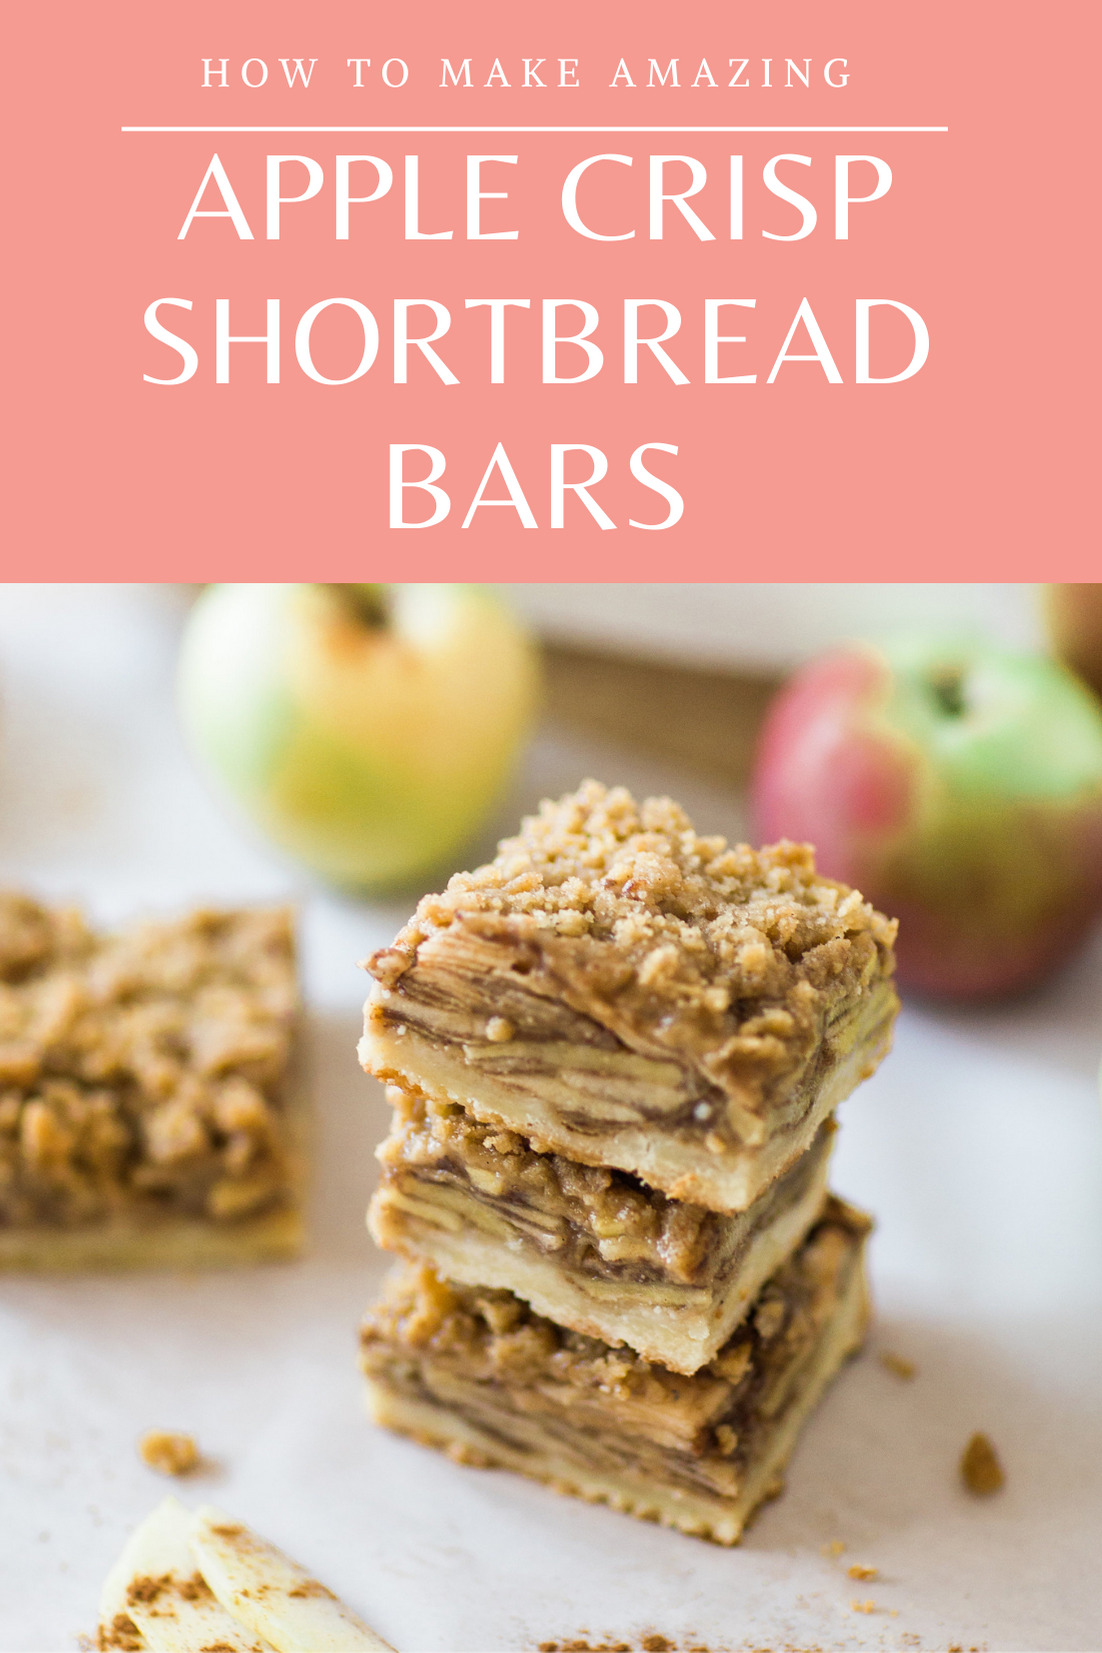 Forget pie; if you love apple desserts, you're gong to want to make these apple crisp shortbread bars, stat. These bars are much simpler to make than a pie, but pack all of the same delicious flavor, plus a rich and buttery shortbread crust, and bars are portable. Click through for the recipe. | glitterinc.com | @glitterinc